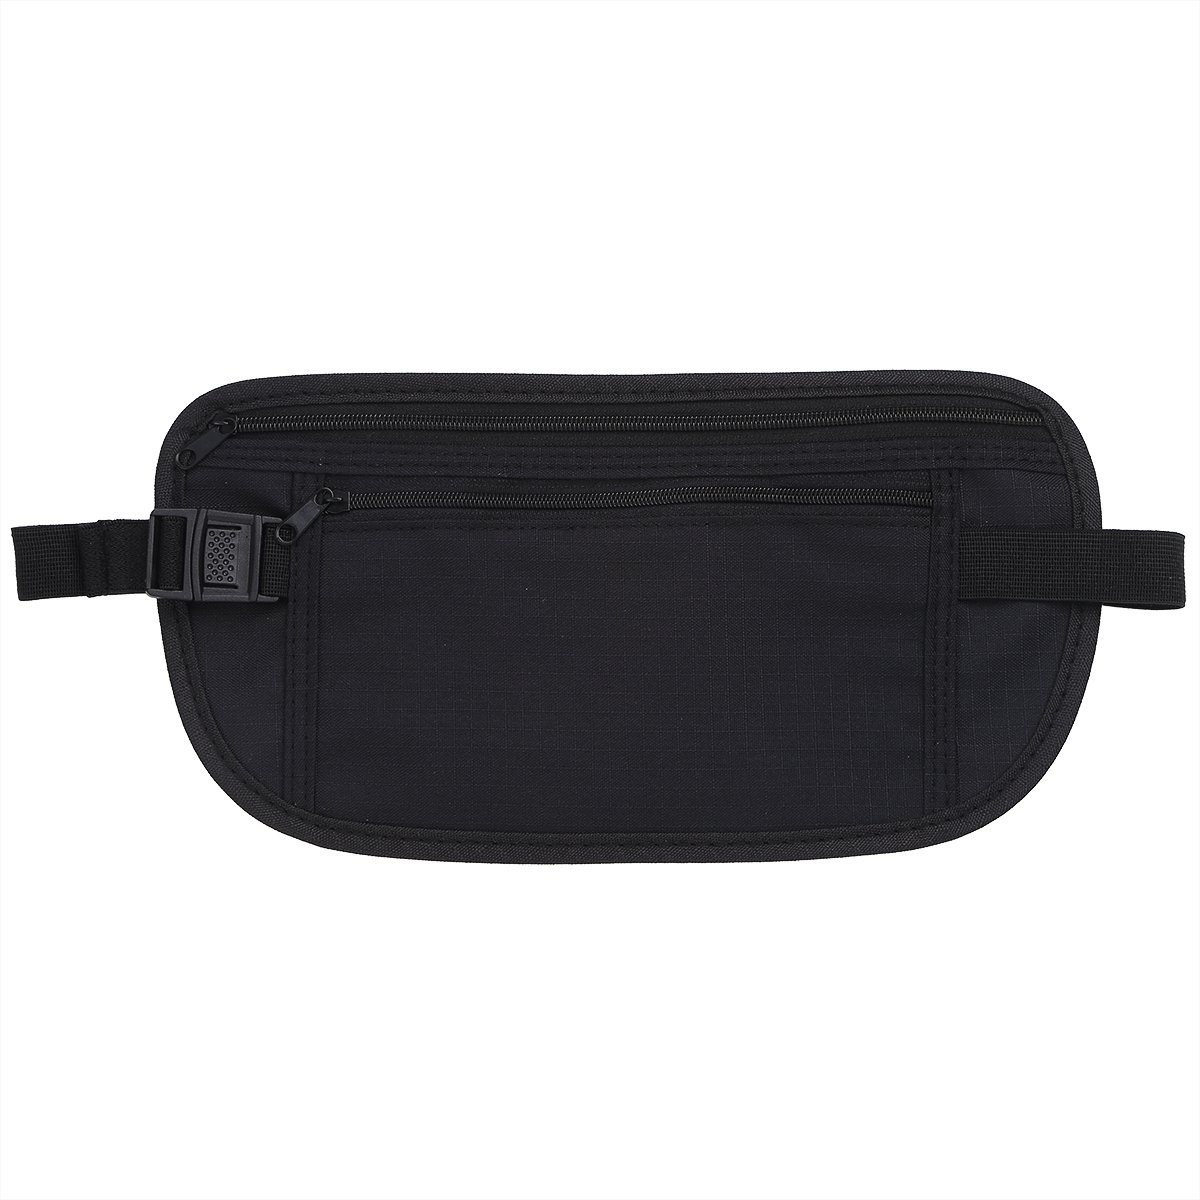 YiZYiF Waist Bag Secure Hidden Money Belt Undercover Wallet Pouch Fanny Pack for Travelling Jogging Running Outdoors